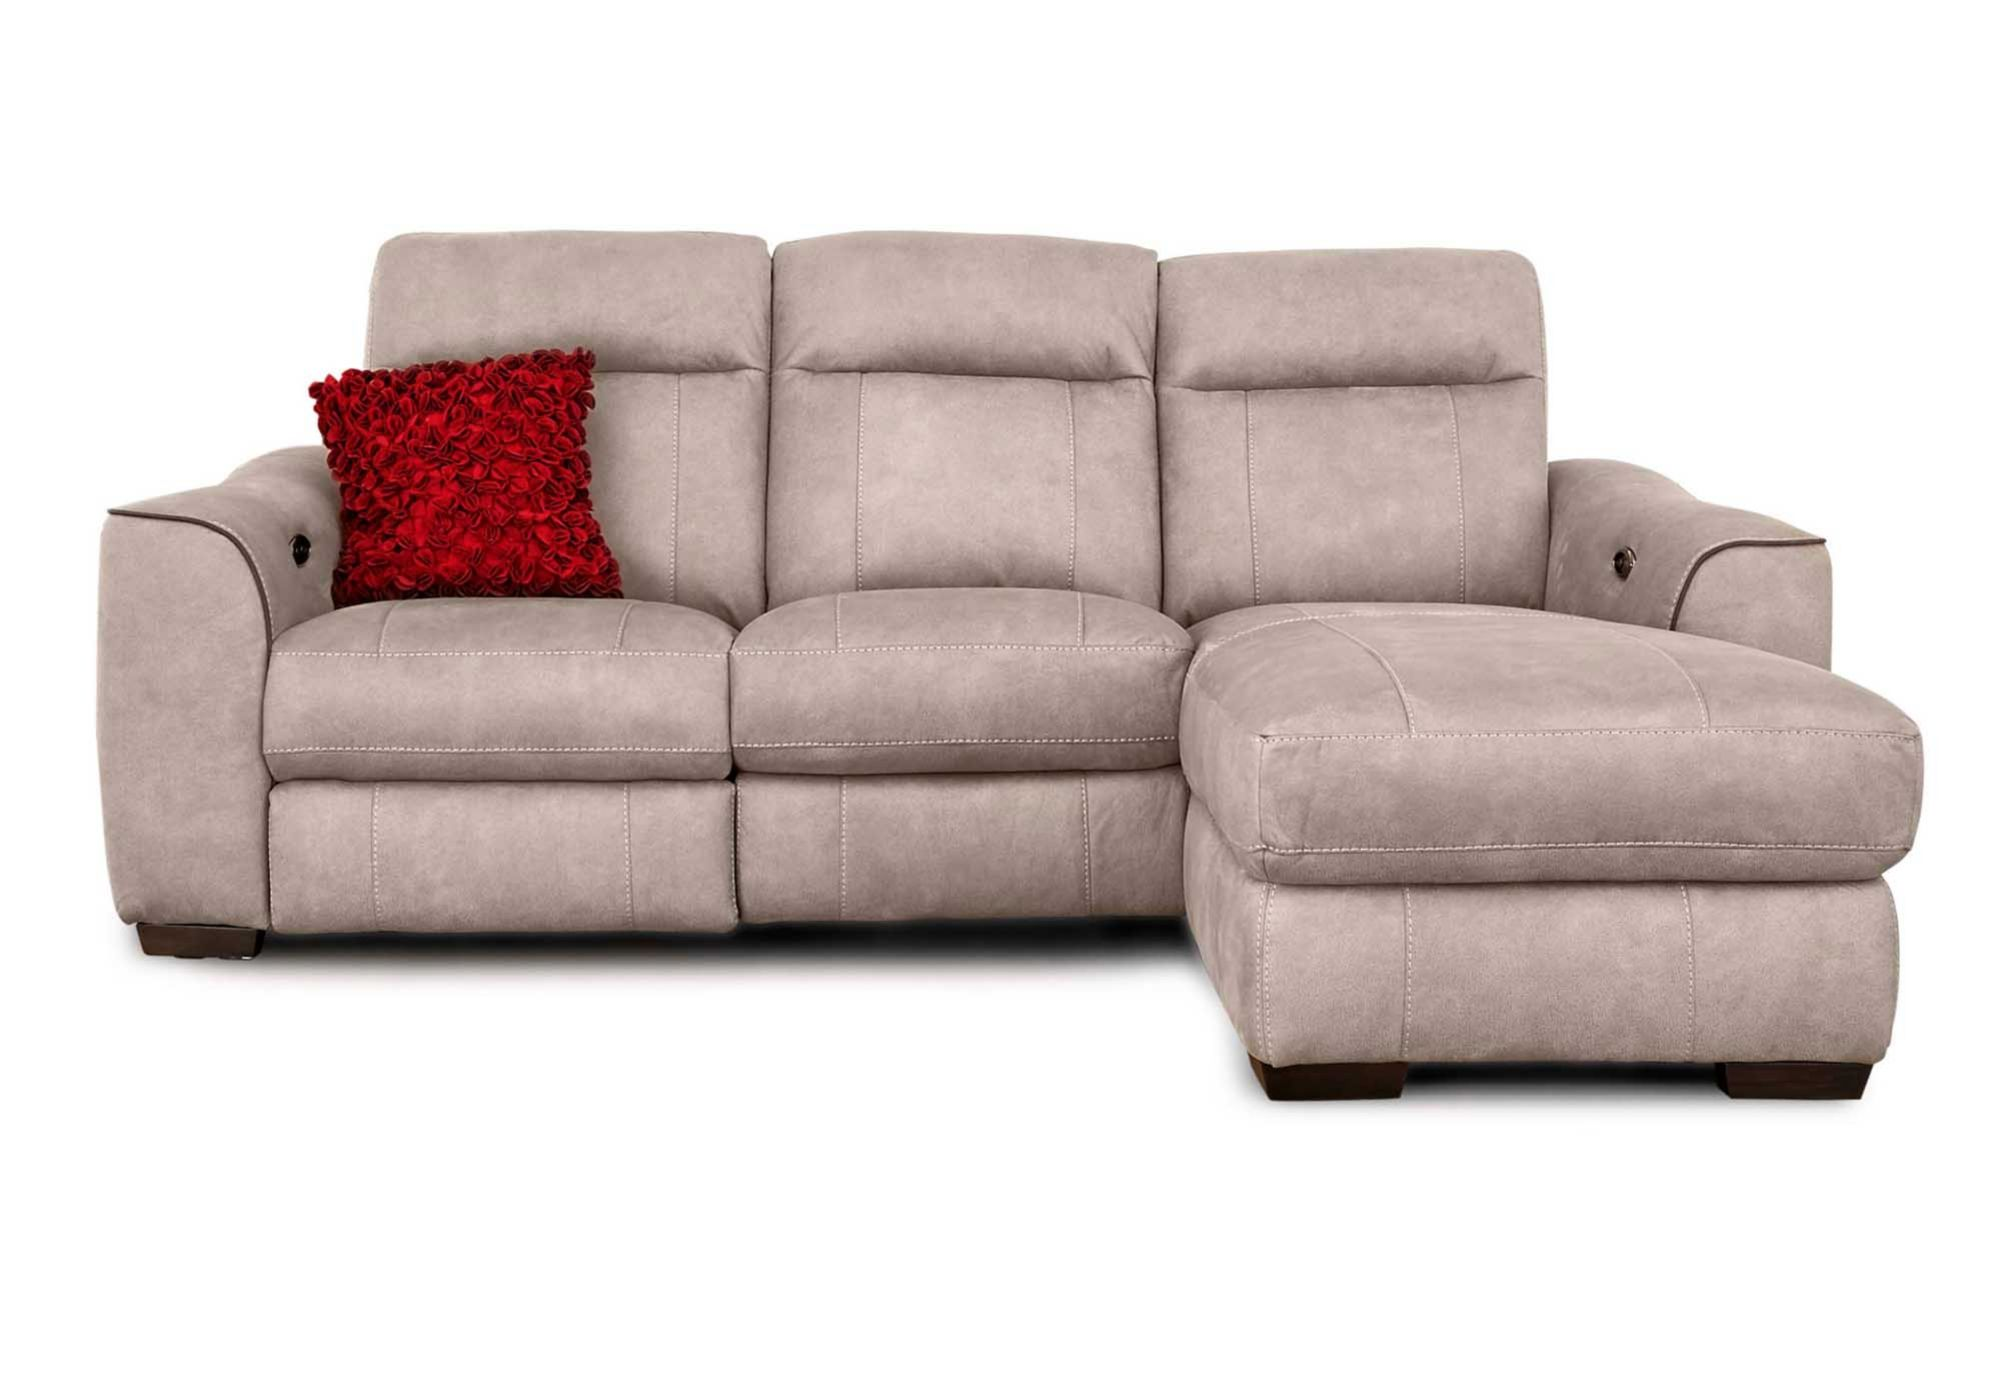 Modena 2 Seater Reclining Leather Sofa Furniture Bed Singapore Village Paloma | Brokeasshome.com